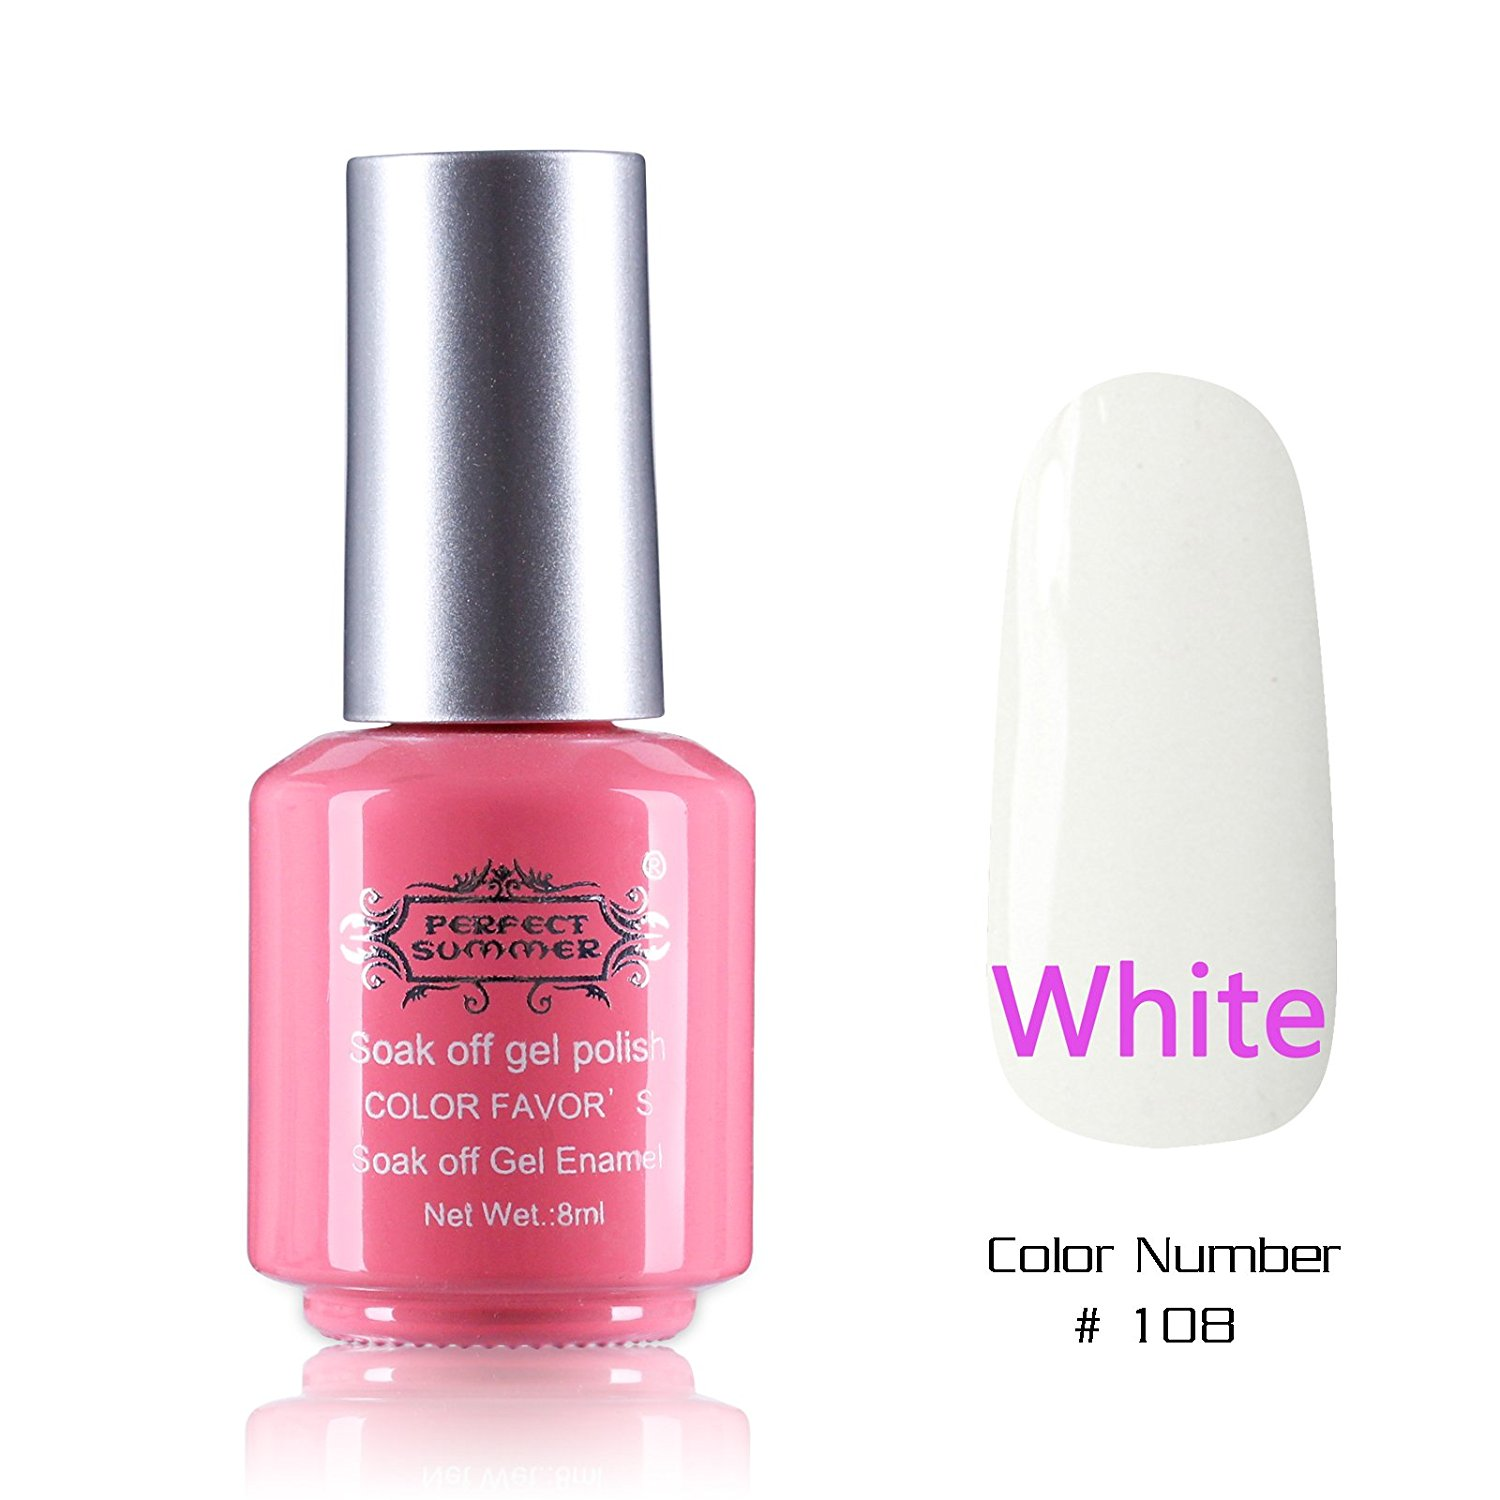 Perfect Summer Nails Painting Art Salon Decoration Gift 8ml Gel Nails Polish UV Led Light Soak Off Creative French Manicure Teens Nails Lacquers Varnish #108 white